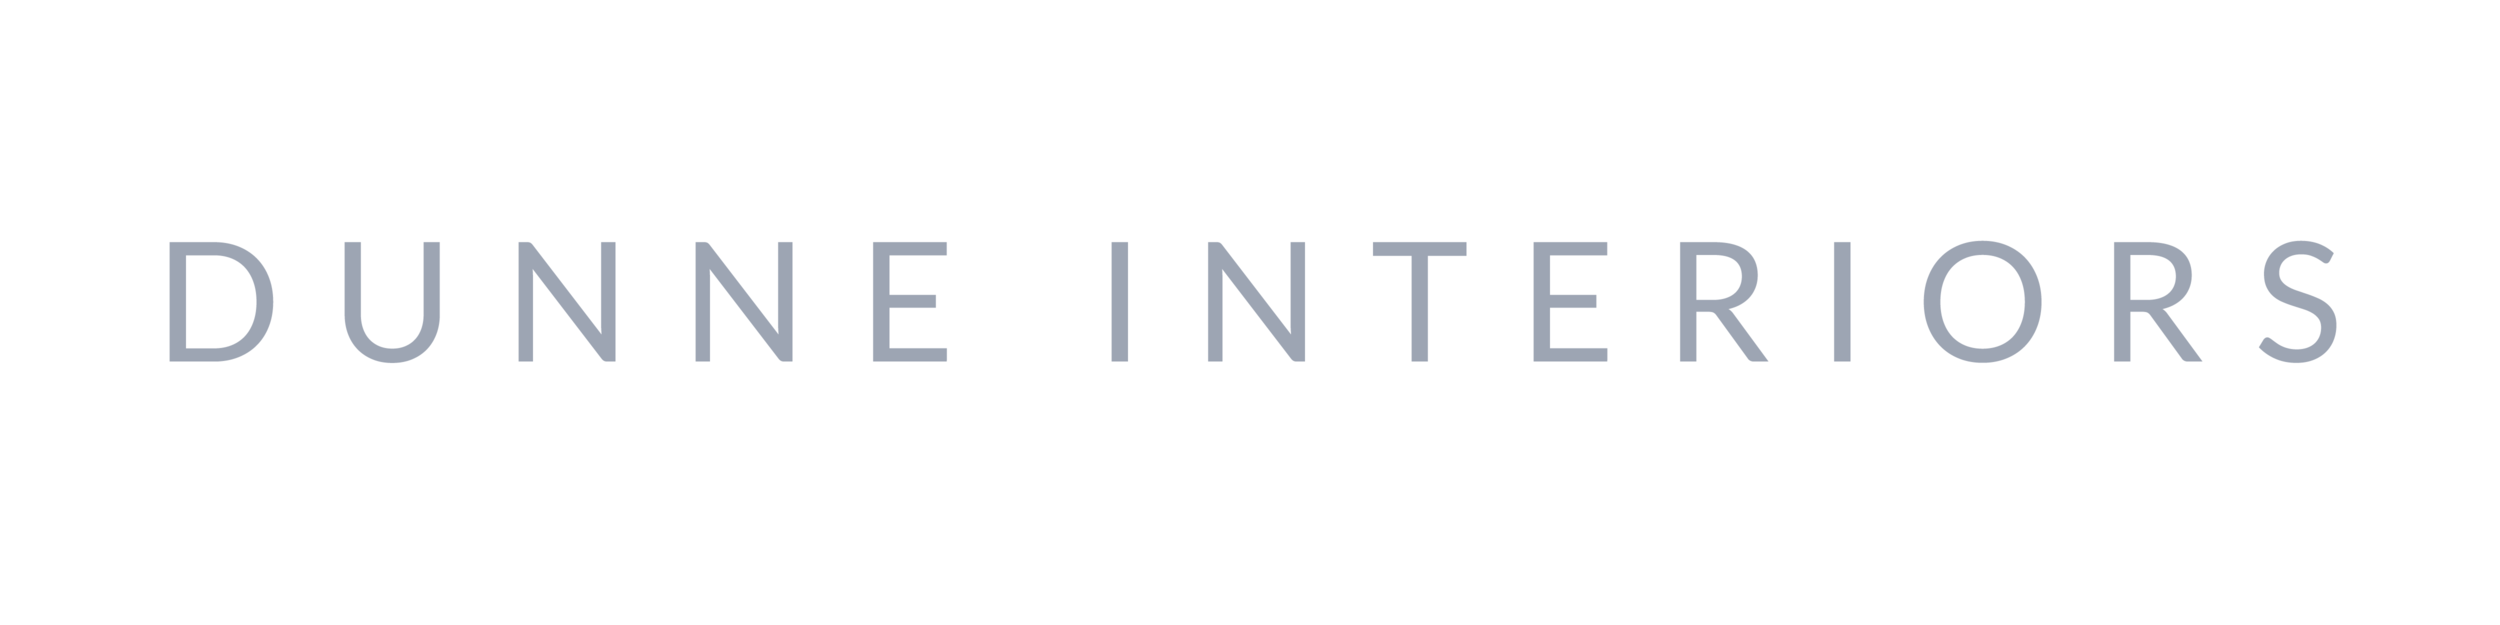 Dunne_Interiors_Logo_600x150_white.png